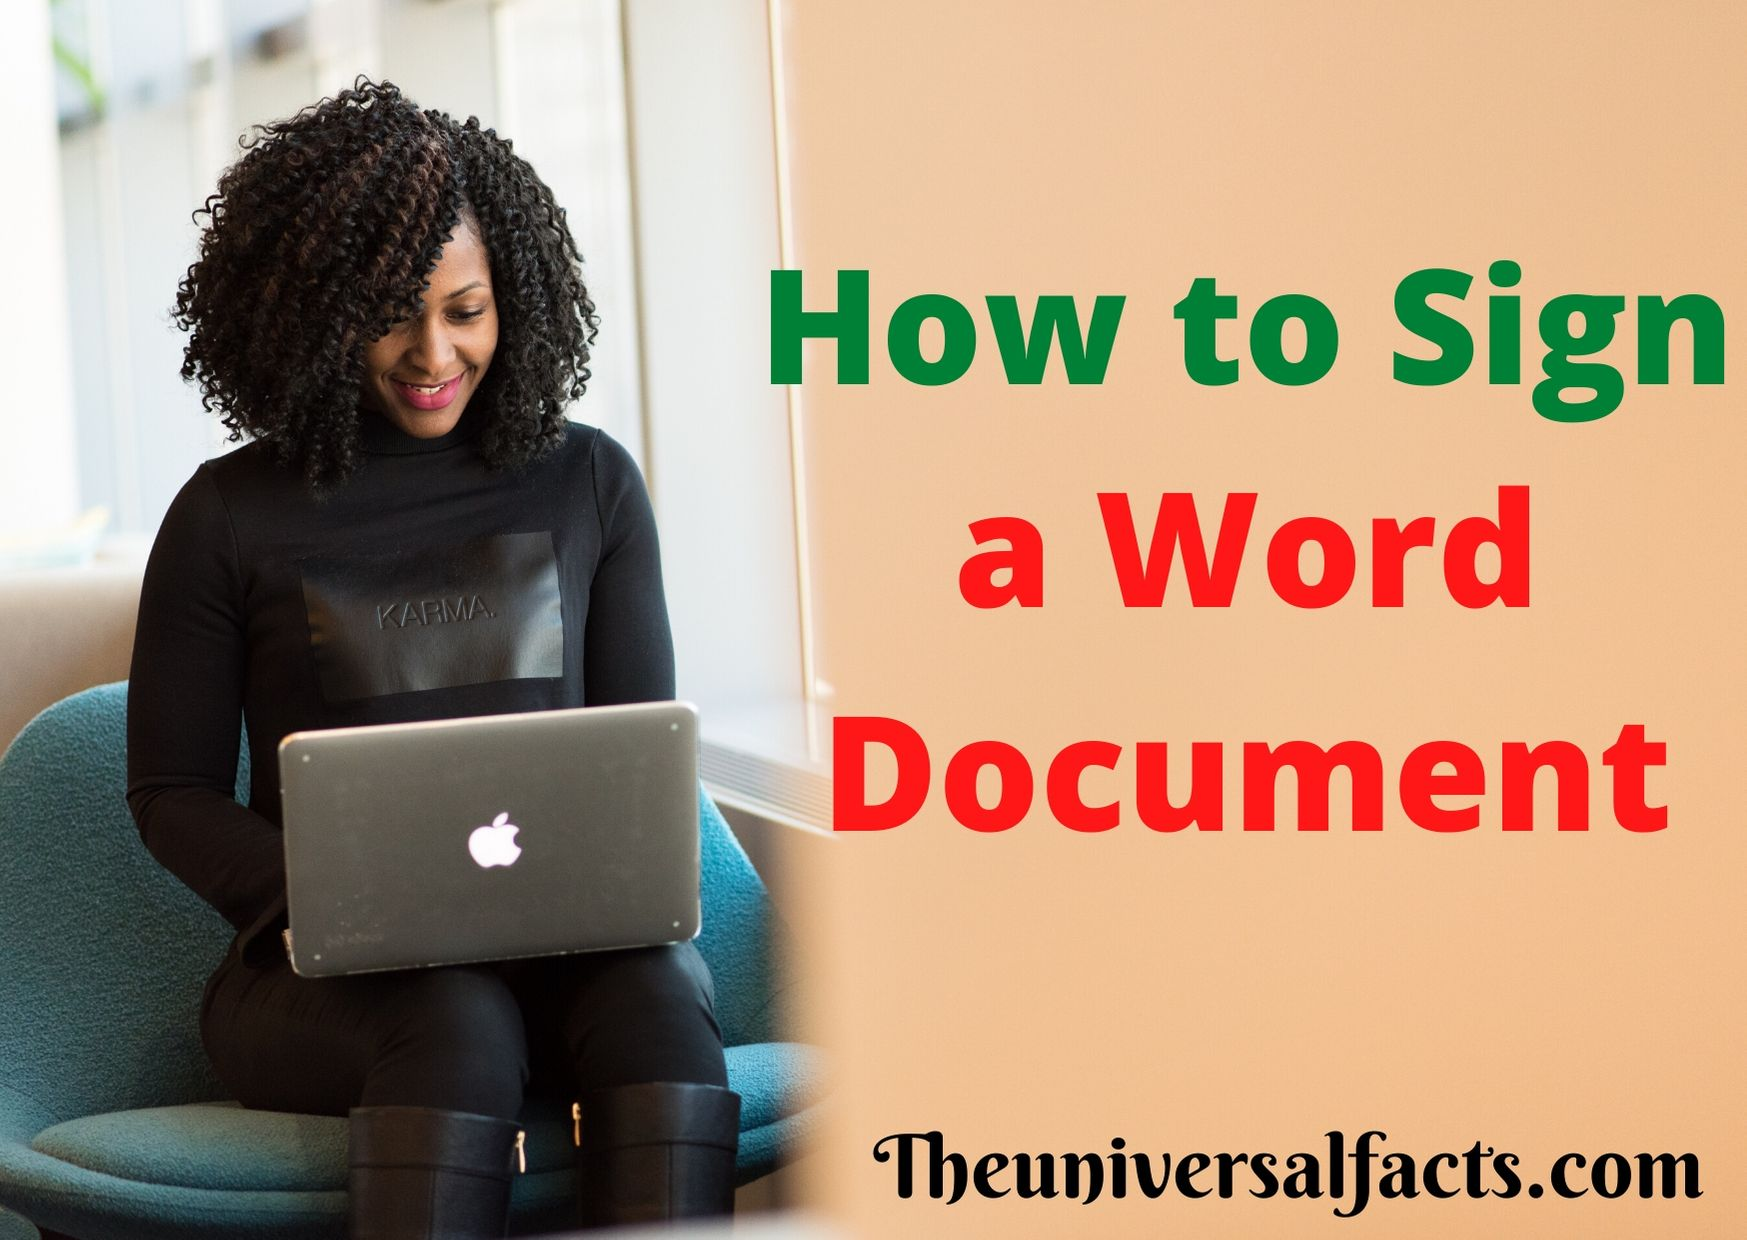 How to Sign a Word Document